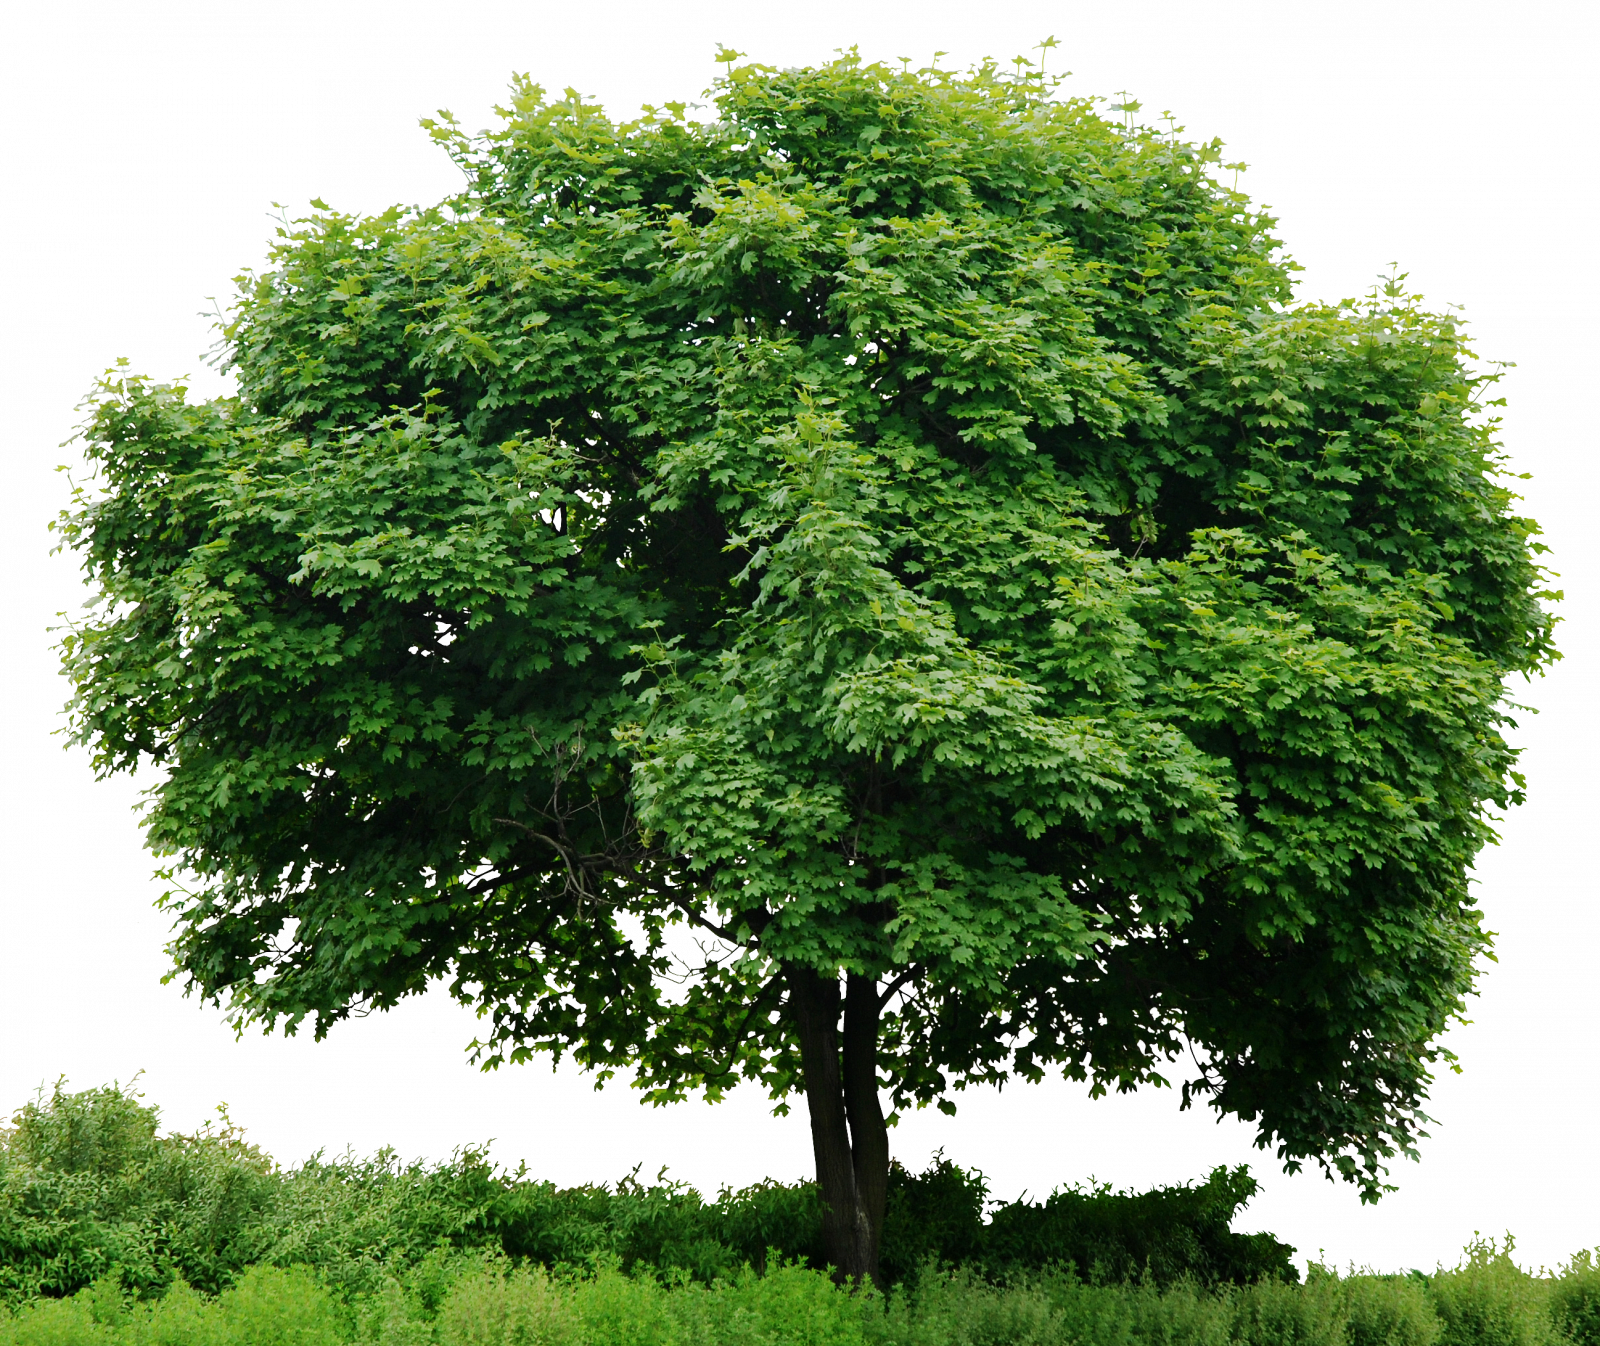 Trees background png. Tree images free icons